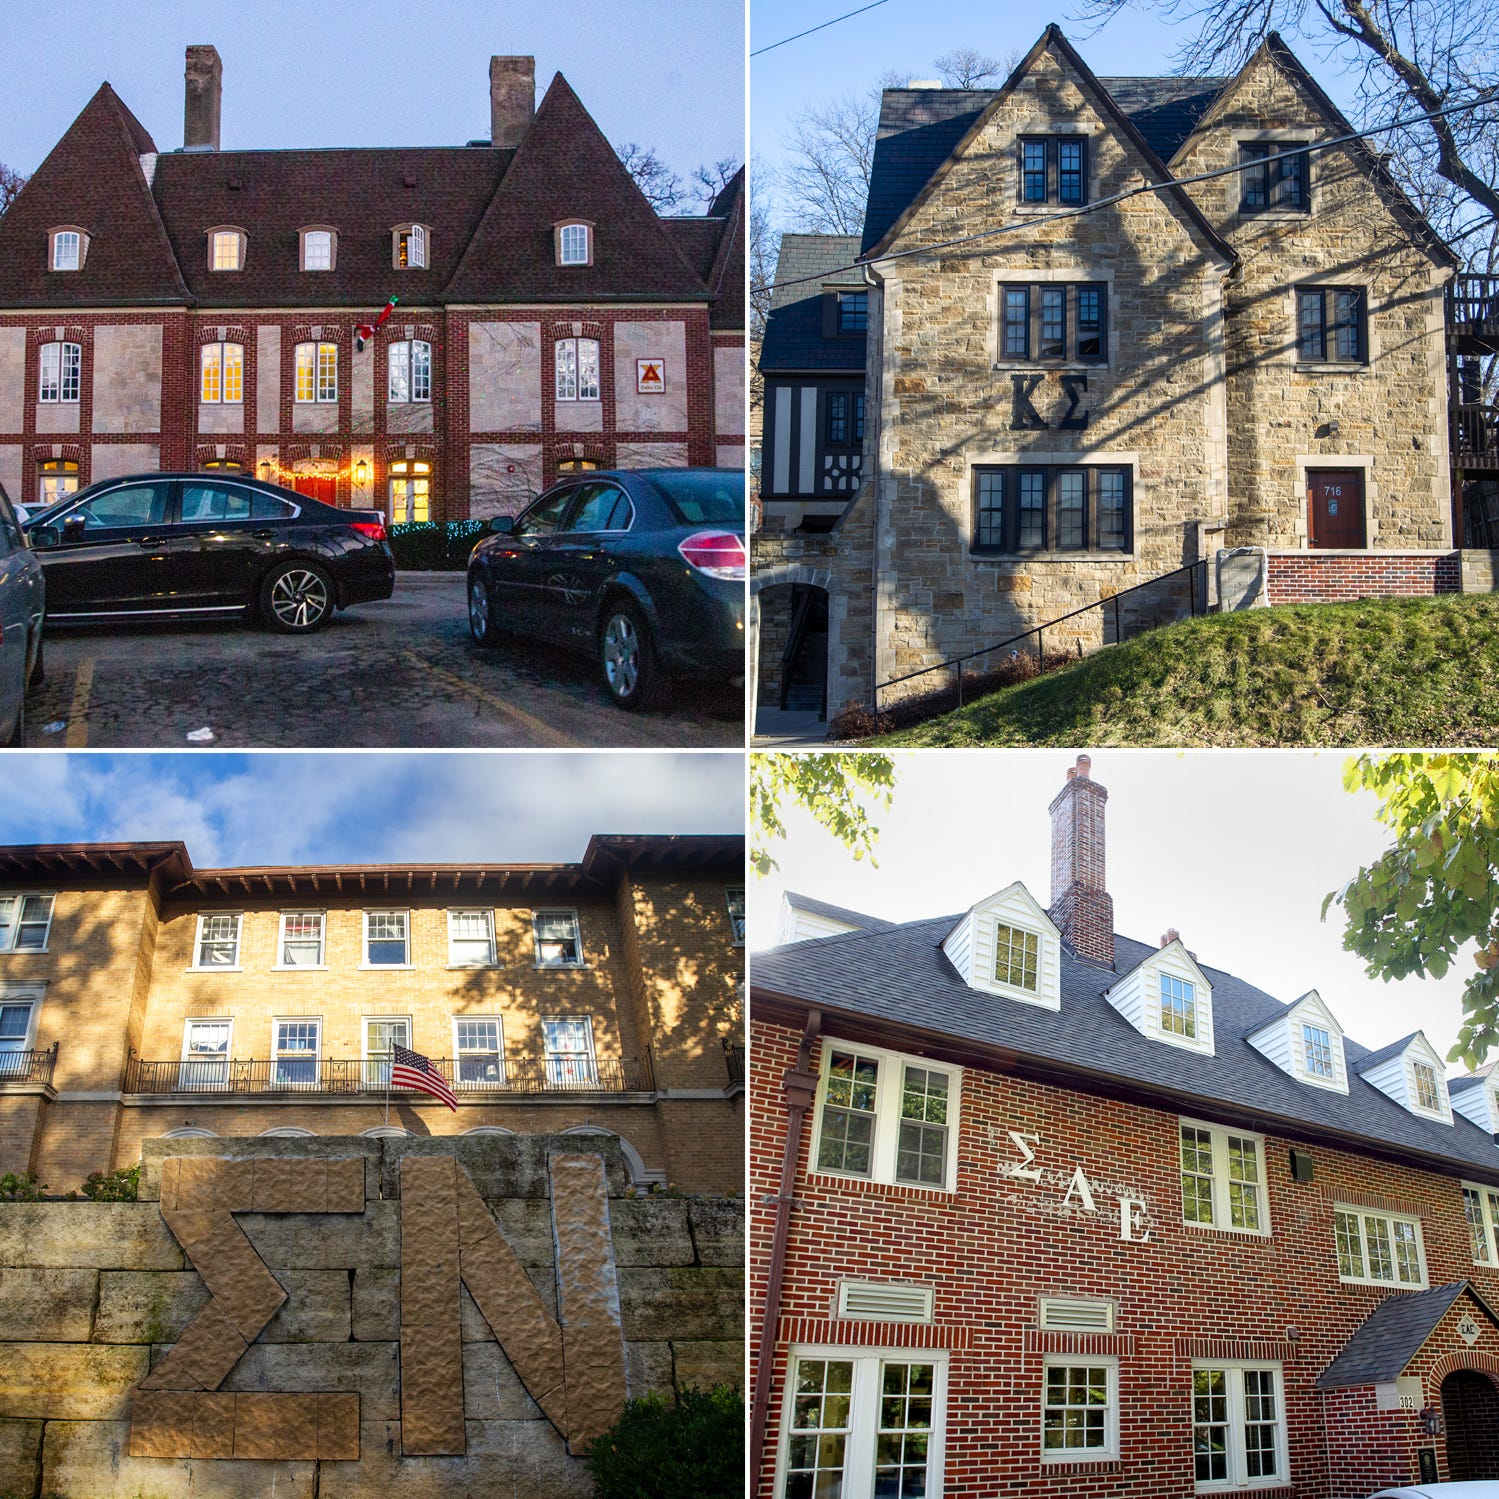 Will deregistered University of Iowa frats return to houses in January?